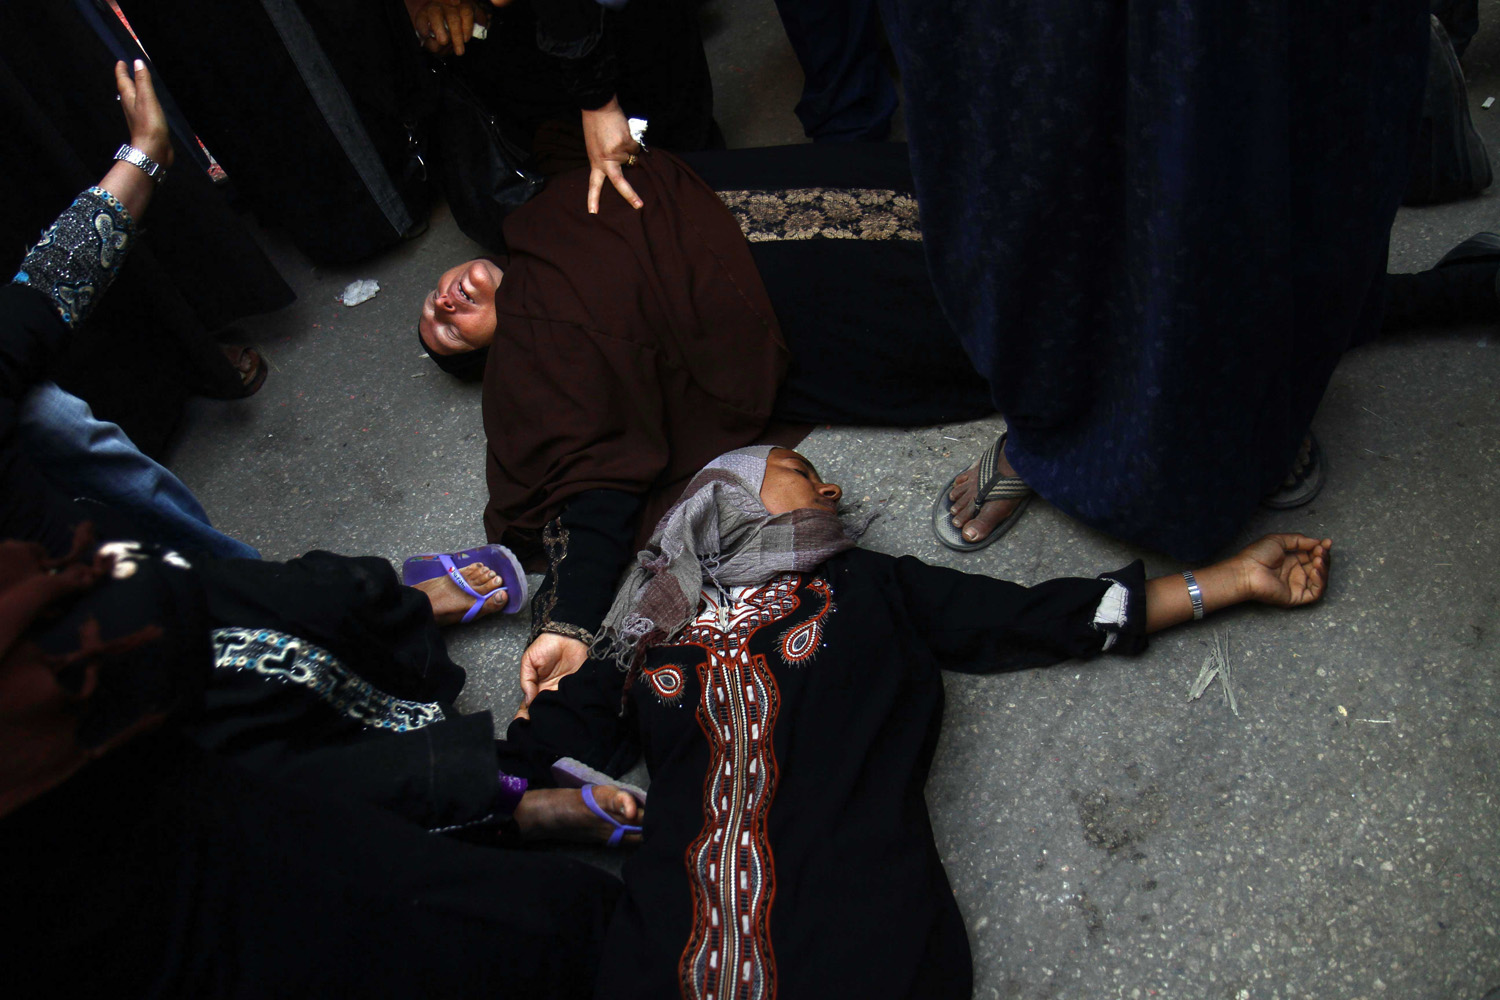 Apr. 28, 2014. Egyptian women overcome by emotion fall to the ground after a judge sentenced to death more than 680 alleged supporters of the country's ousted Islamist president over acts of violence and the murder of policemen in the latest mass trial in the southern city of Minya.